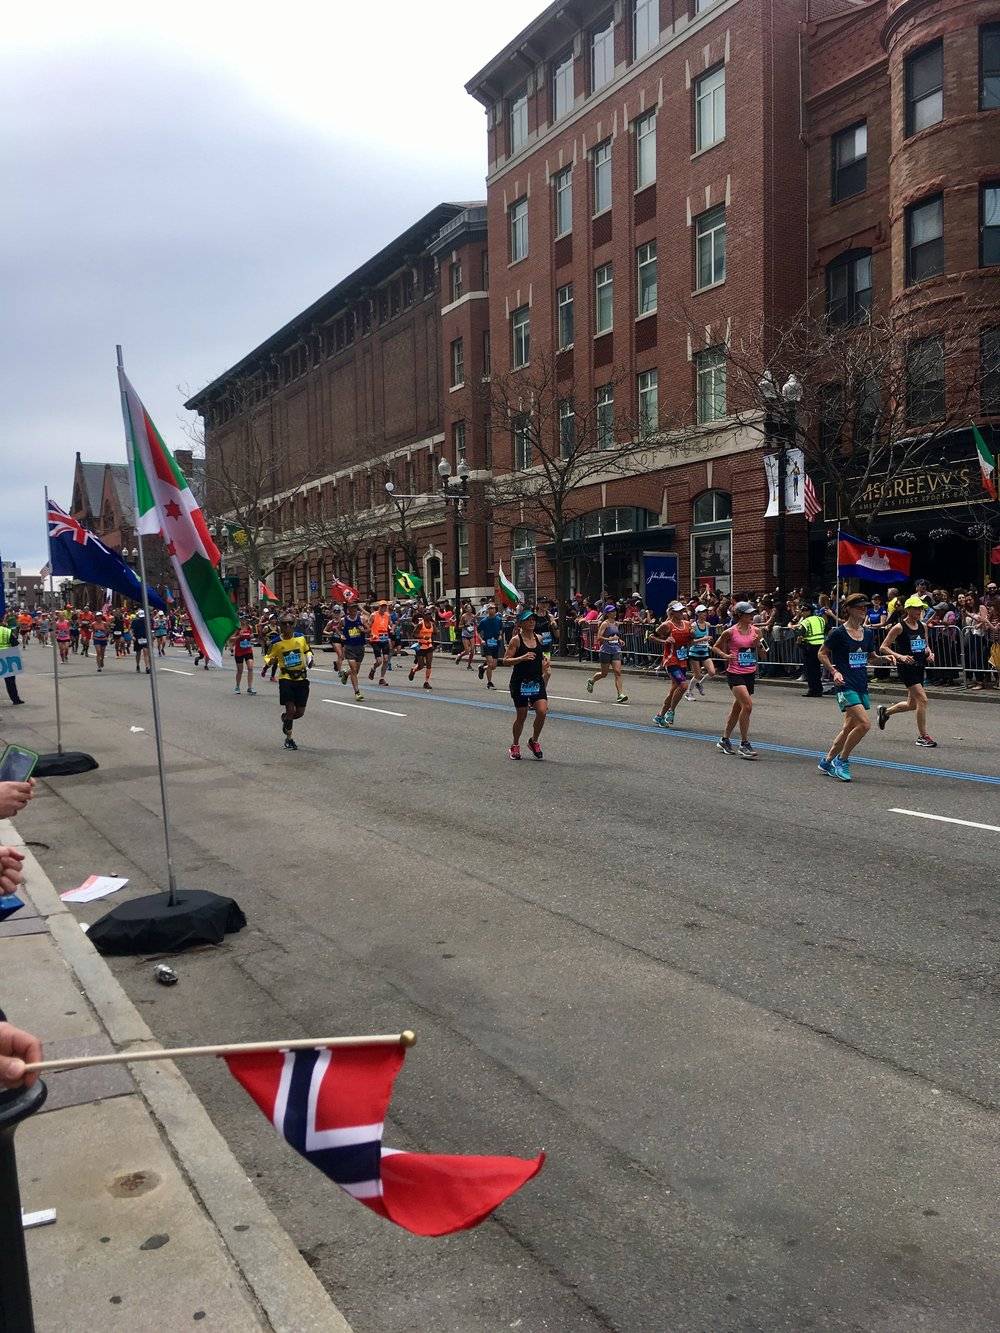 My view, spectating, right on Boylston Street not far from the finish.